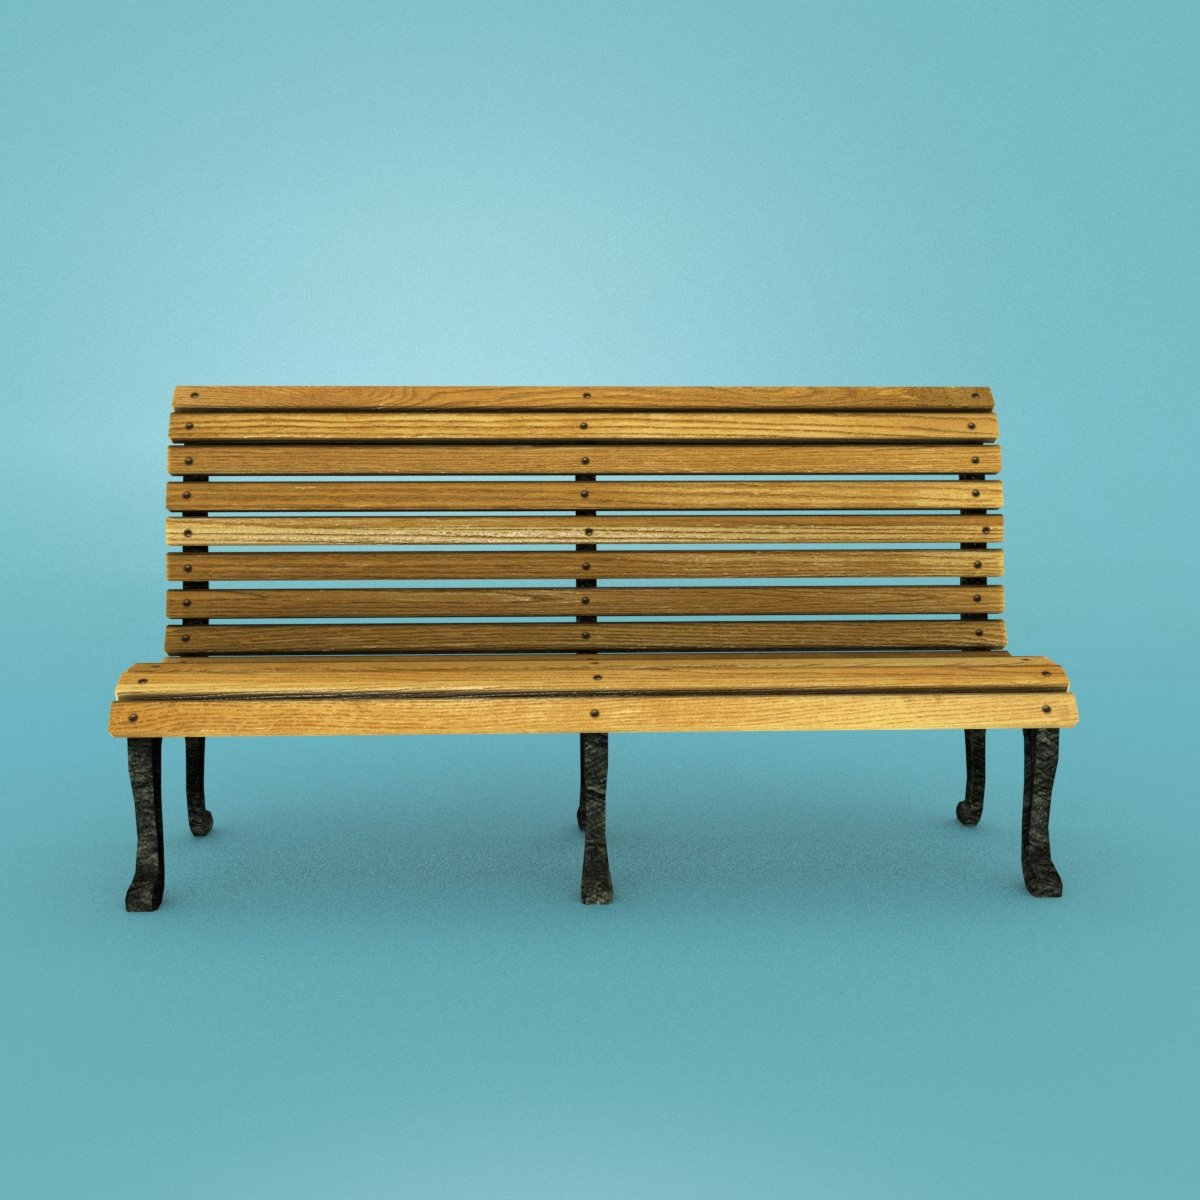 Awesome Bench Games Part - 5: Low Poly Bench 2 For Games Dev 3D Model